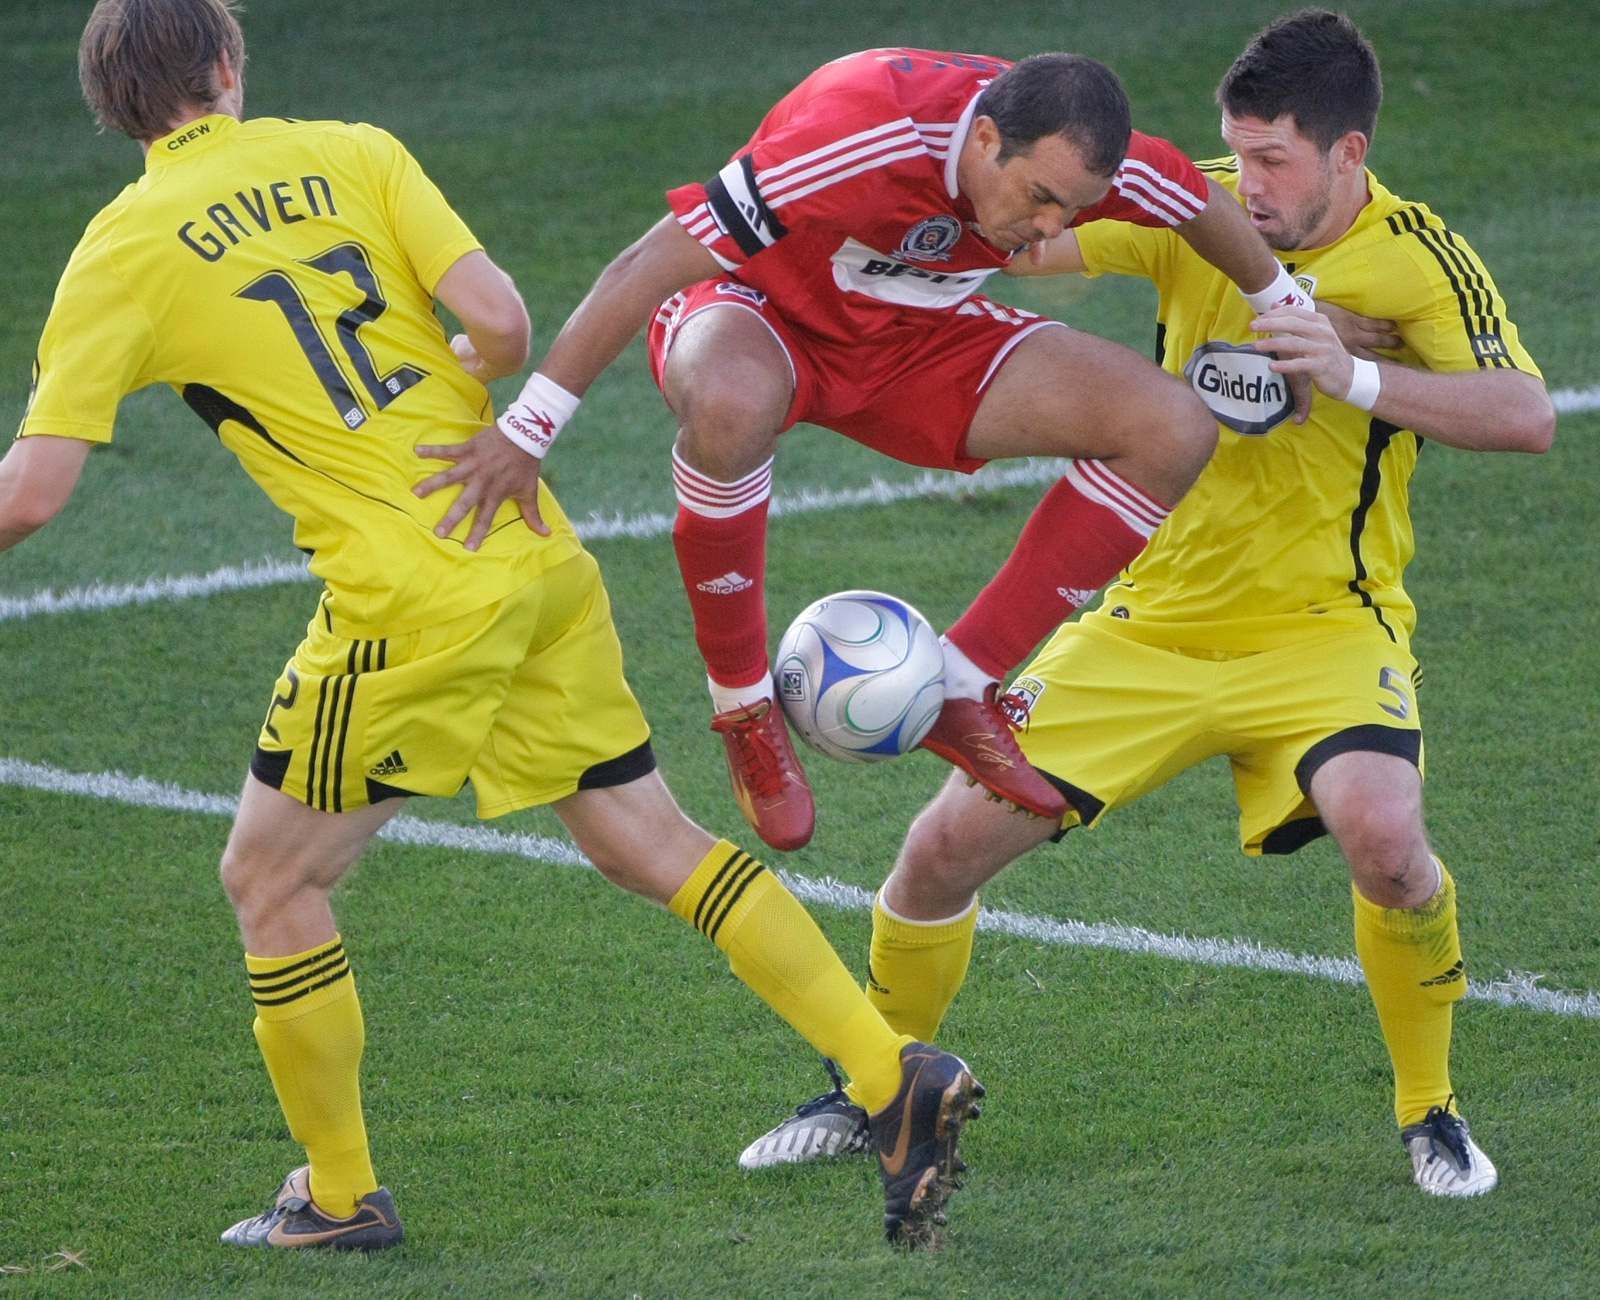 Blanco tries his signature Cuauhtemiña in a 2008 match against the Columbus Crew, putting the ball between his legs and carrying it while jumping between a pair of defenders.